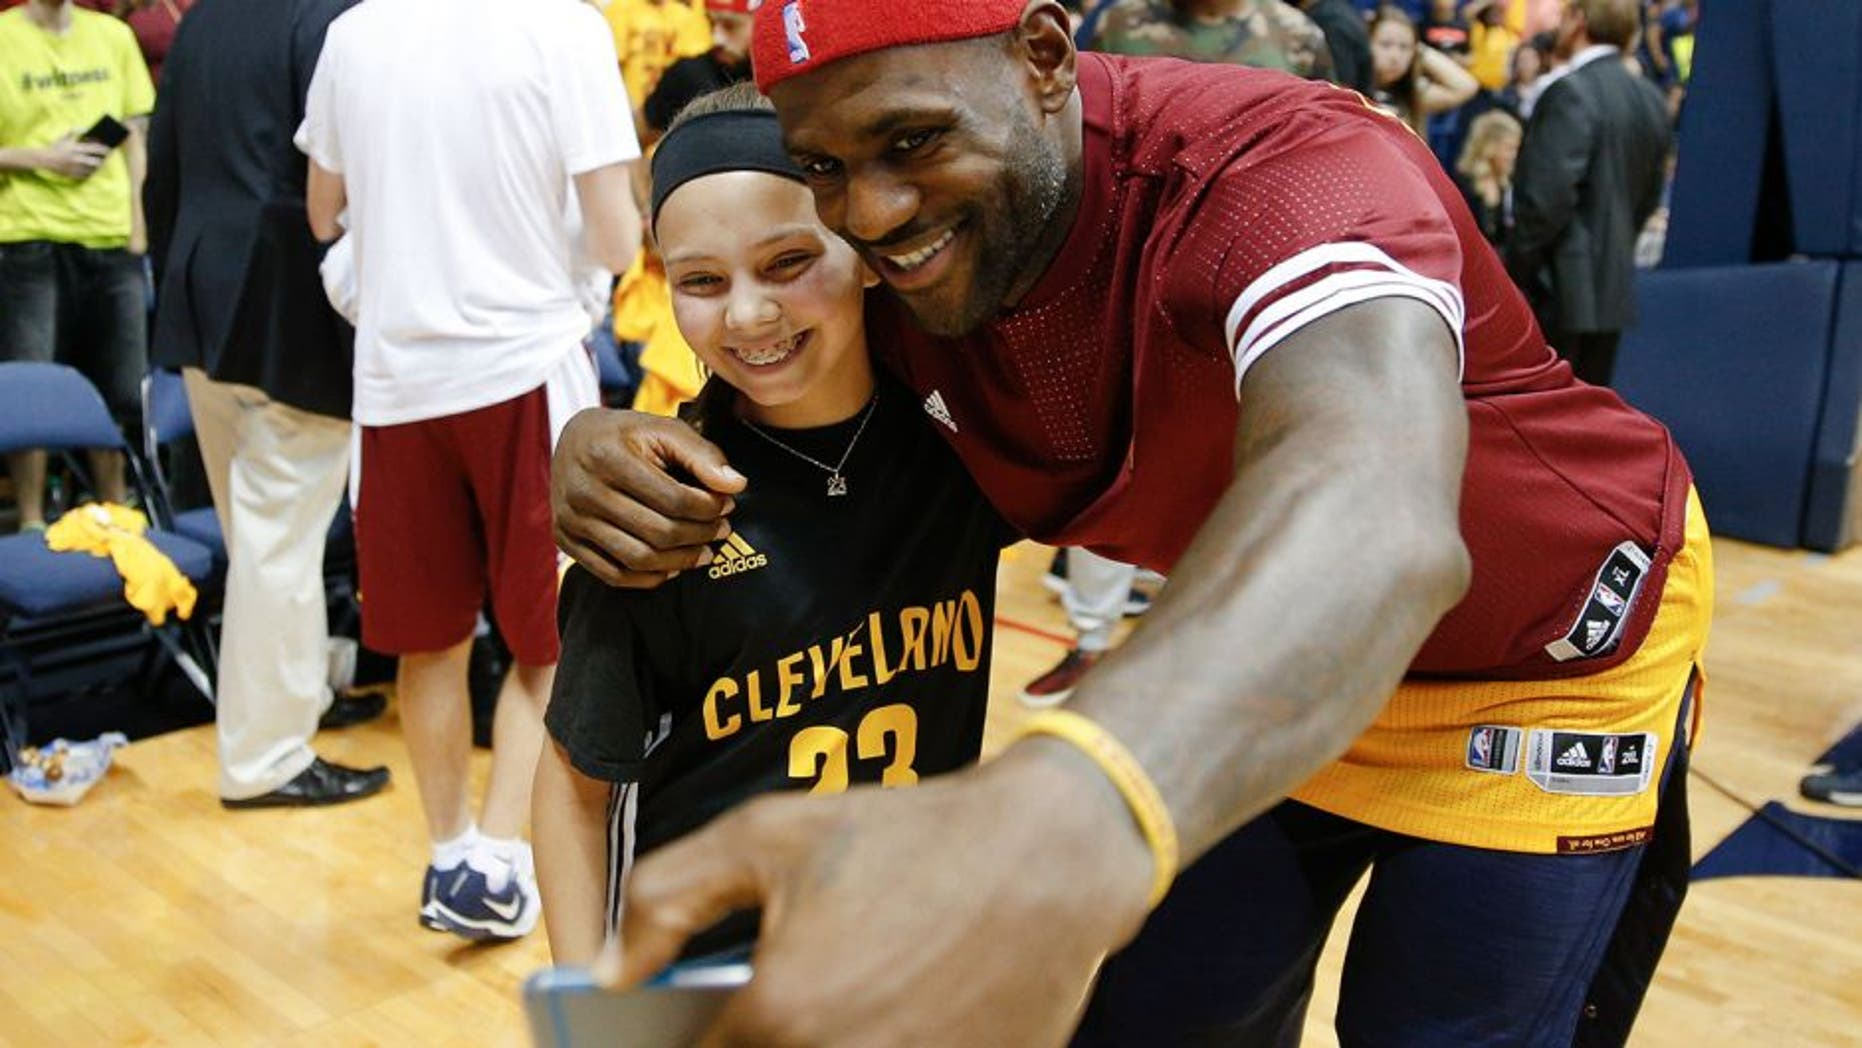 Cleveland Cavaliers forward LeBron James, right, takes a selfie with a young fan after an NBA preseason basketball game against the Atlanta Hawks, Wednesday, Oct. 7, 2015, in Cincinnati. The Hawks won 98-96. (AP Photo/John Minchillo)